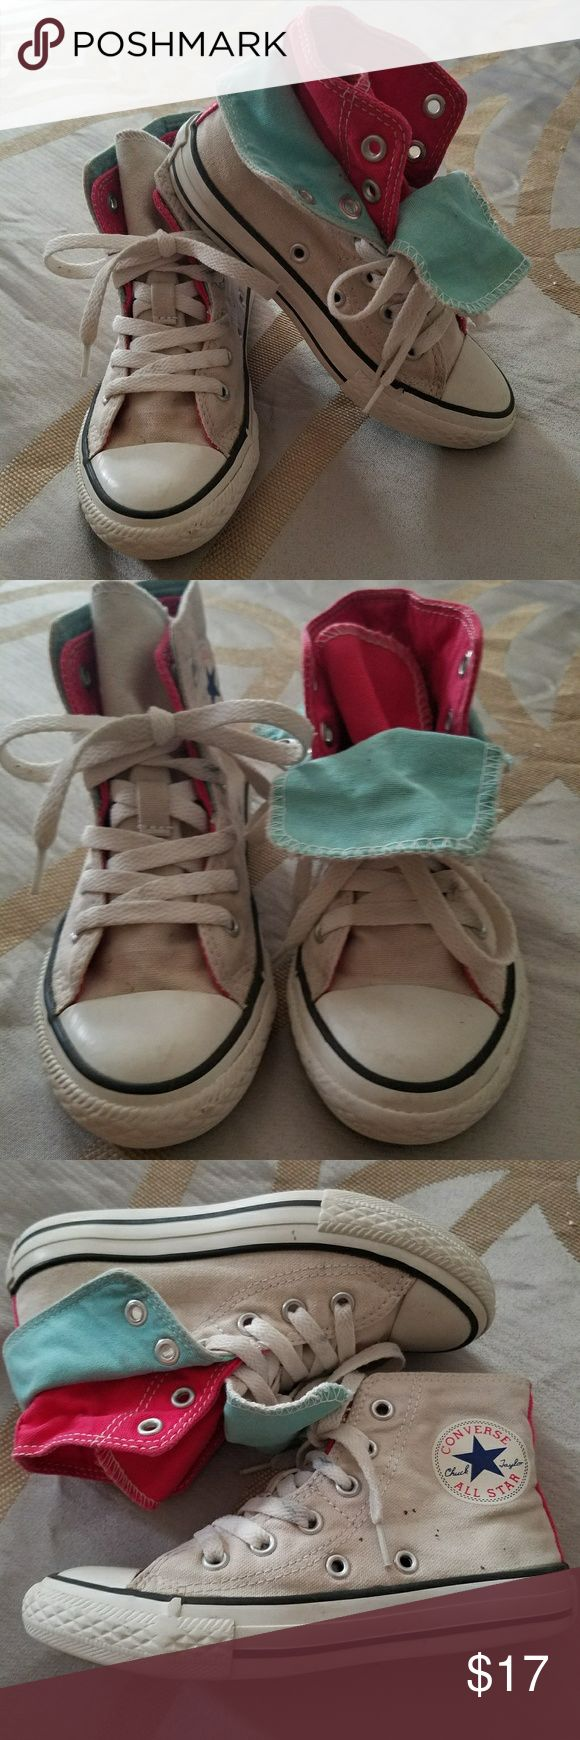 Converse high tops These are in good condition one shoe has some pen marks, these have the fold over look it exposes the mint green and pink color. Very cute! Converse Shoes Sneakers